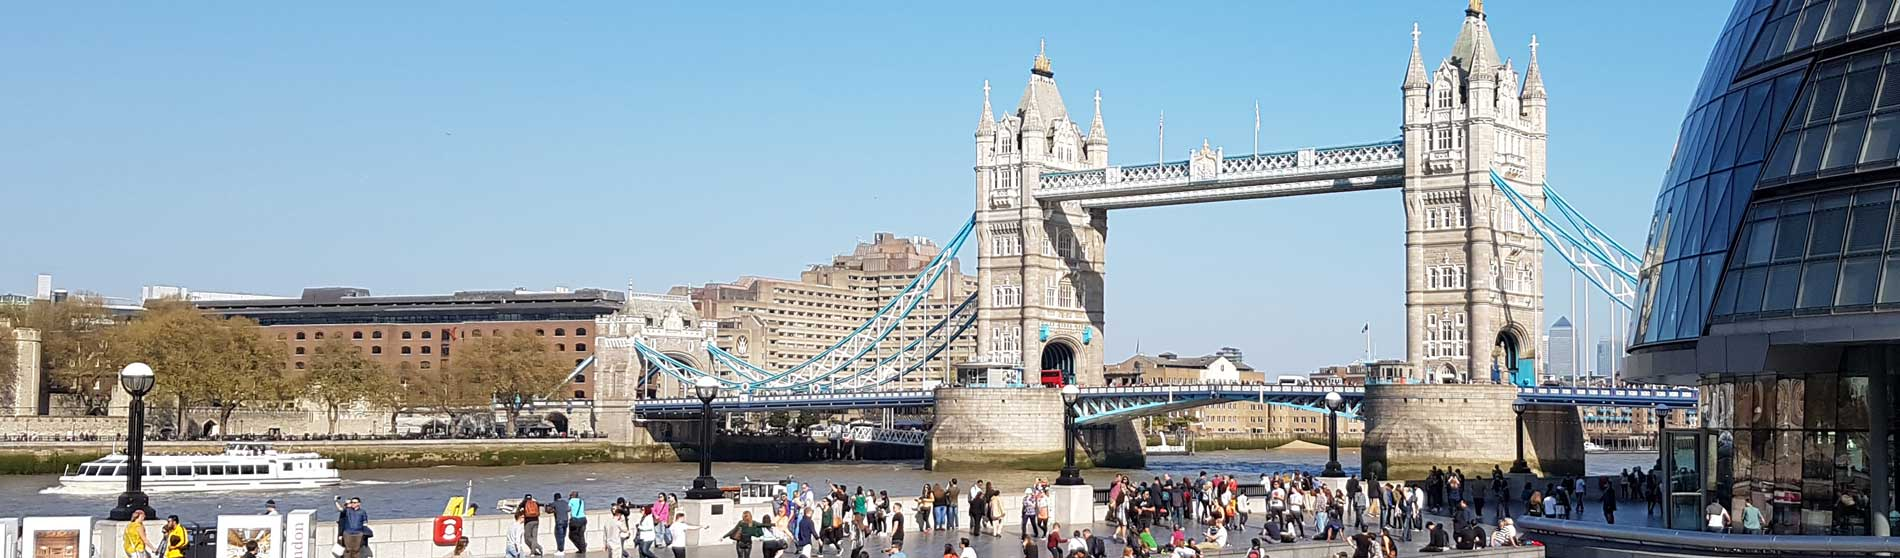 One-Day Walking Tour of London's Top Sights